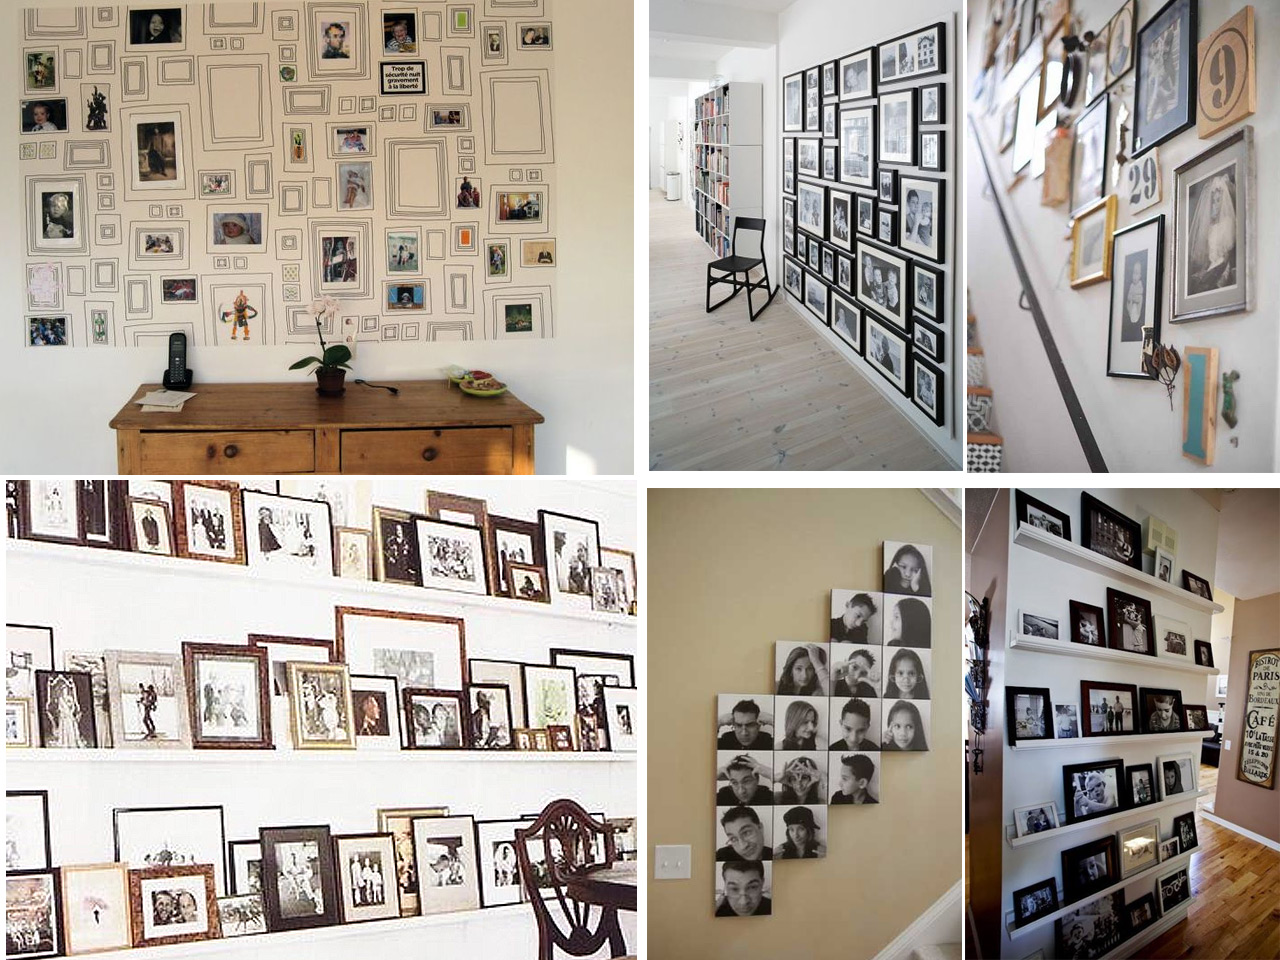 60 brillantes ideas para decorar con fotos familiares - Como decorar las paredes del salon ...